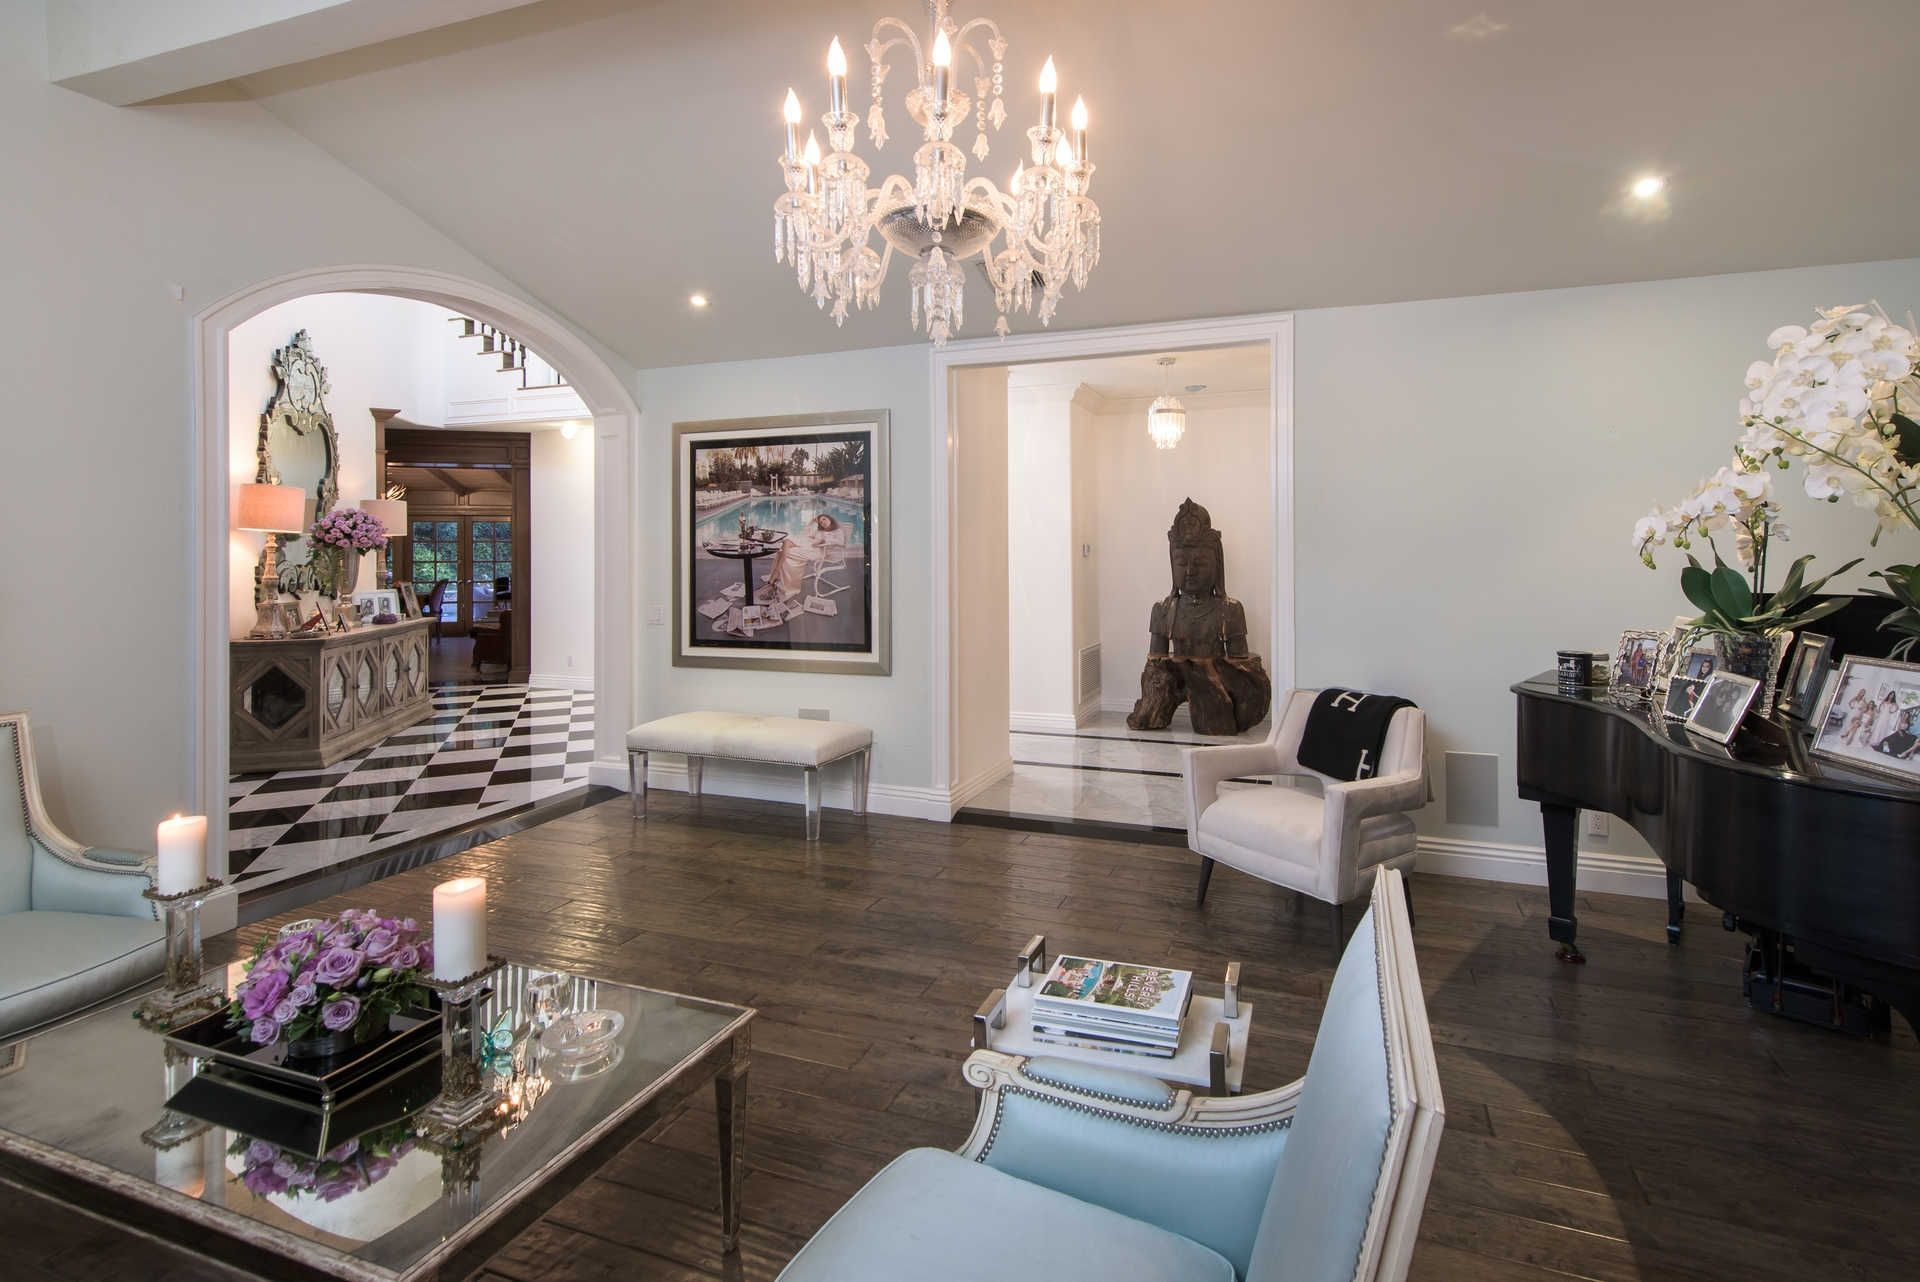 Home Tour Kyle Richards Real Housewives of Beverly Hills